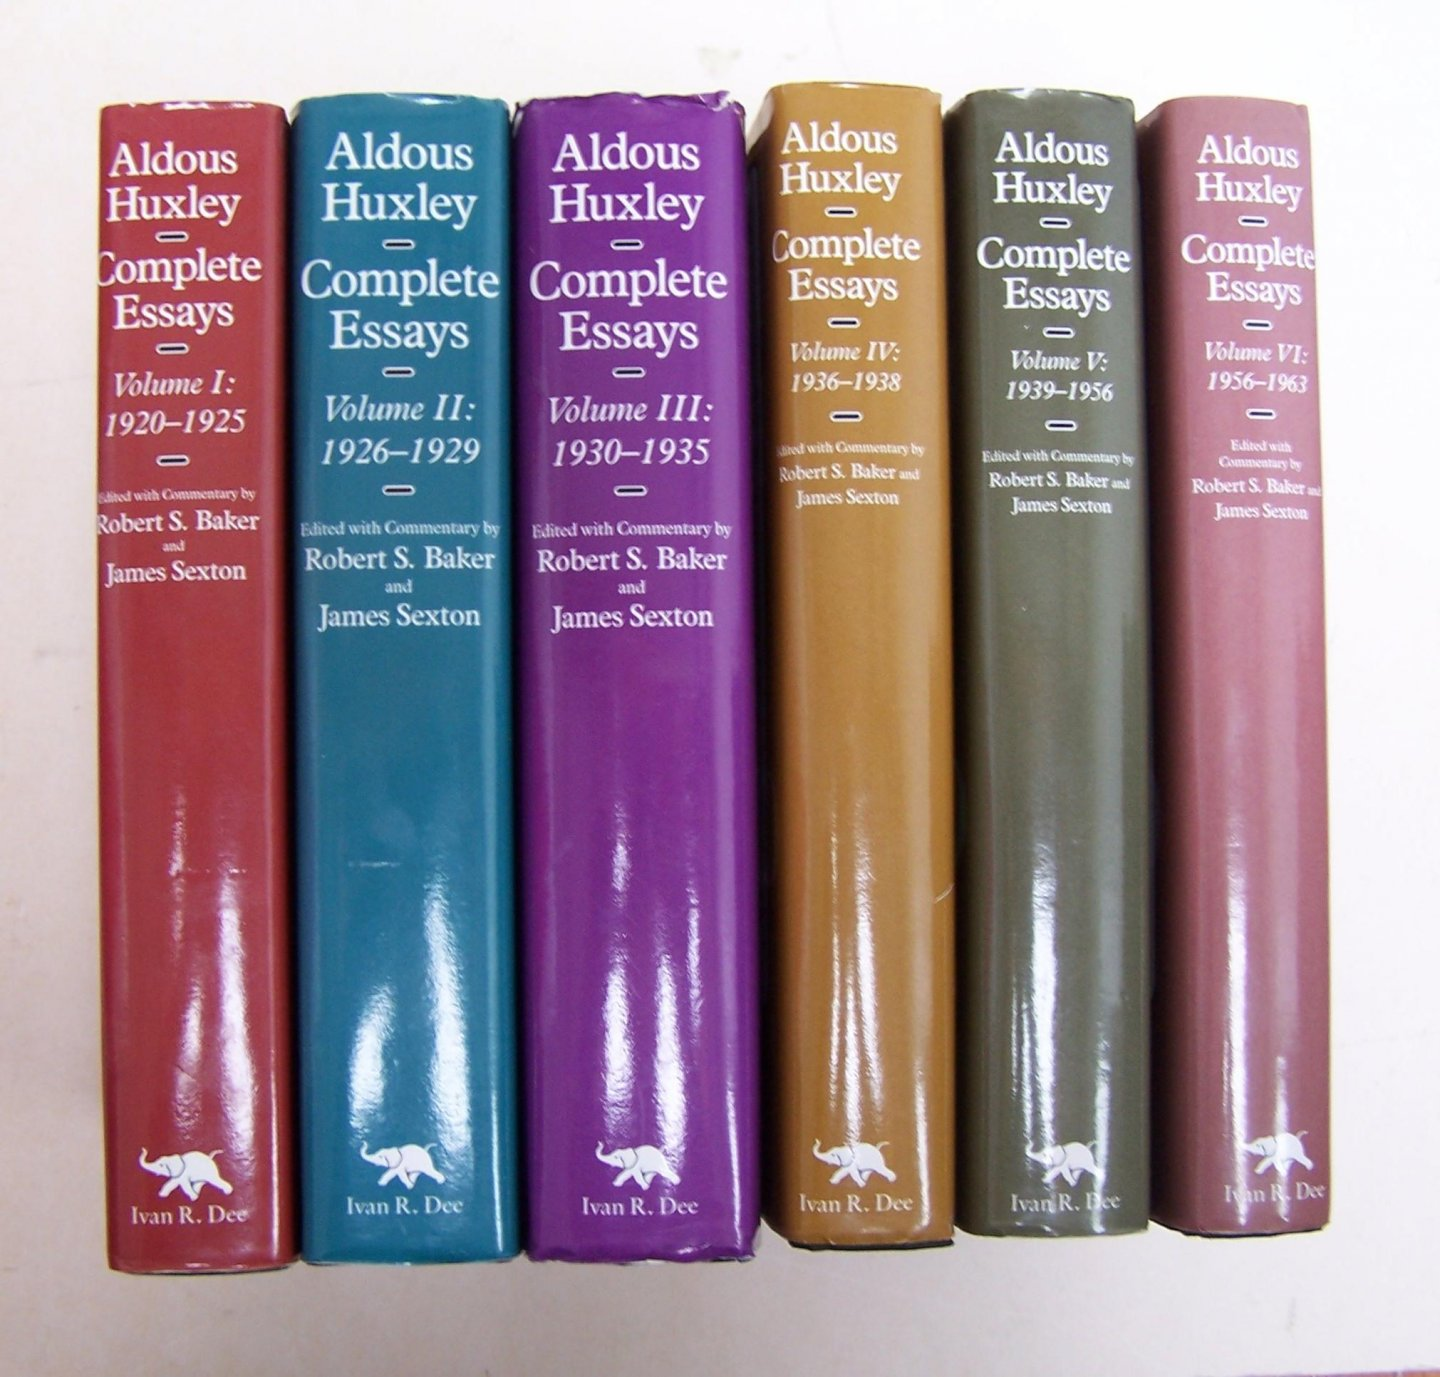 aldous huxley essays collected essays of aldous huxley aldous aldous huxley complete essays essayhuxley aldous books antiquarian used old remainders